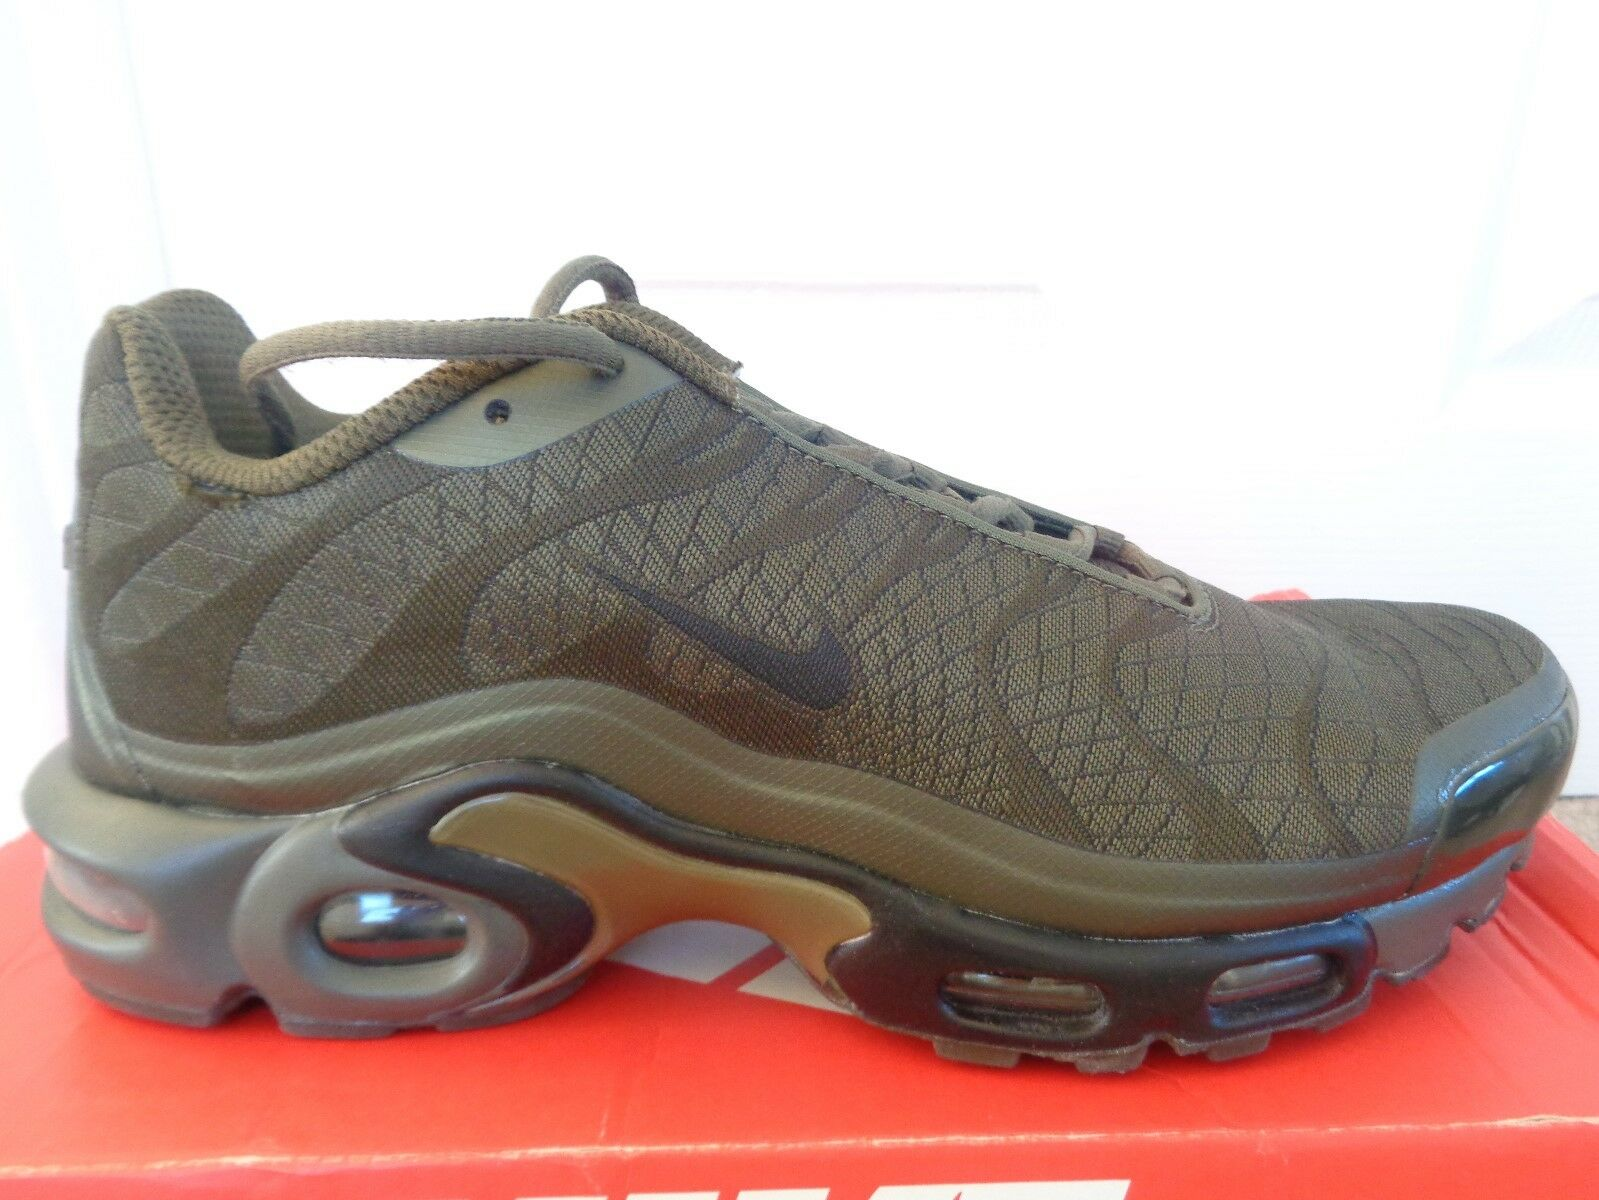 online store fcd6f 7ef0b inexpensive nike stomp camo shox youtube fff0f 5079b; coupon for nike air  max plus jcrd baskets chaussures 845006 200 us 7.5 neuf us boîte